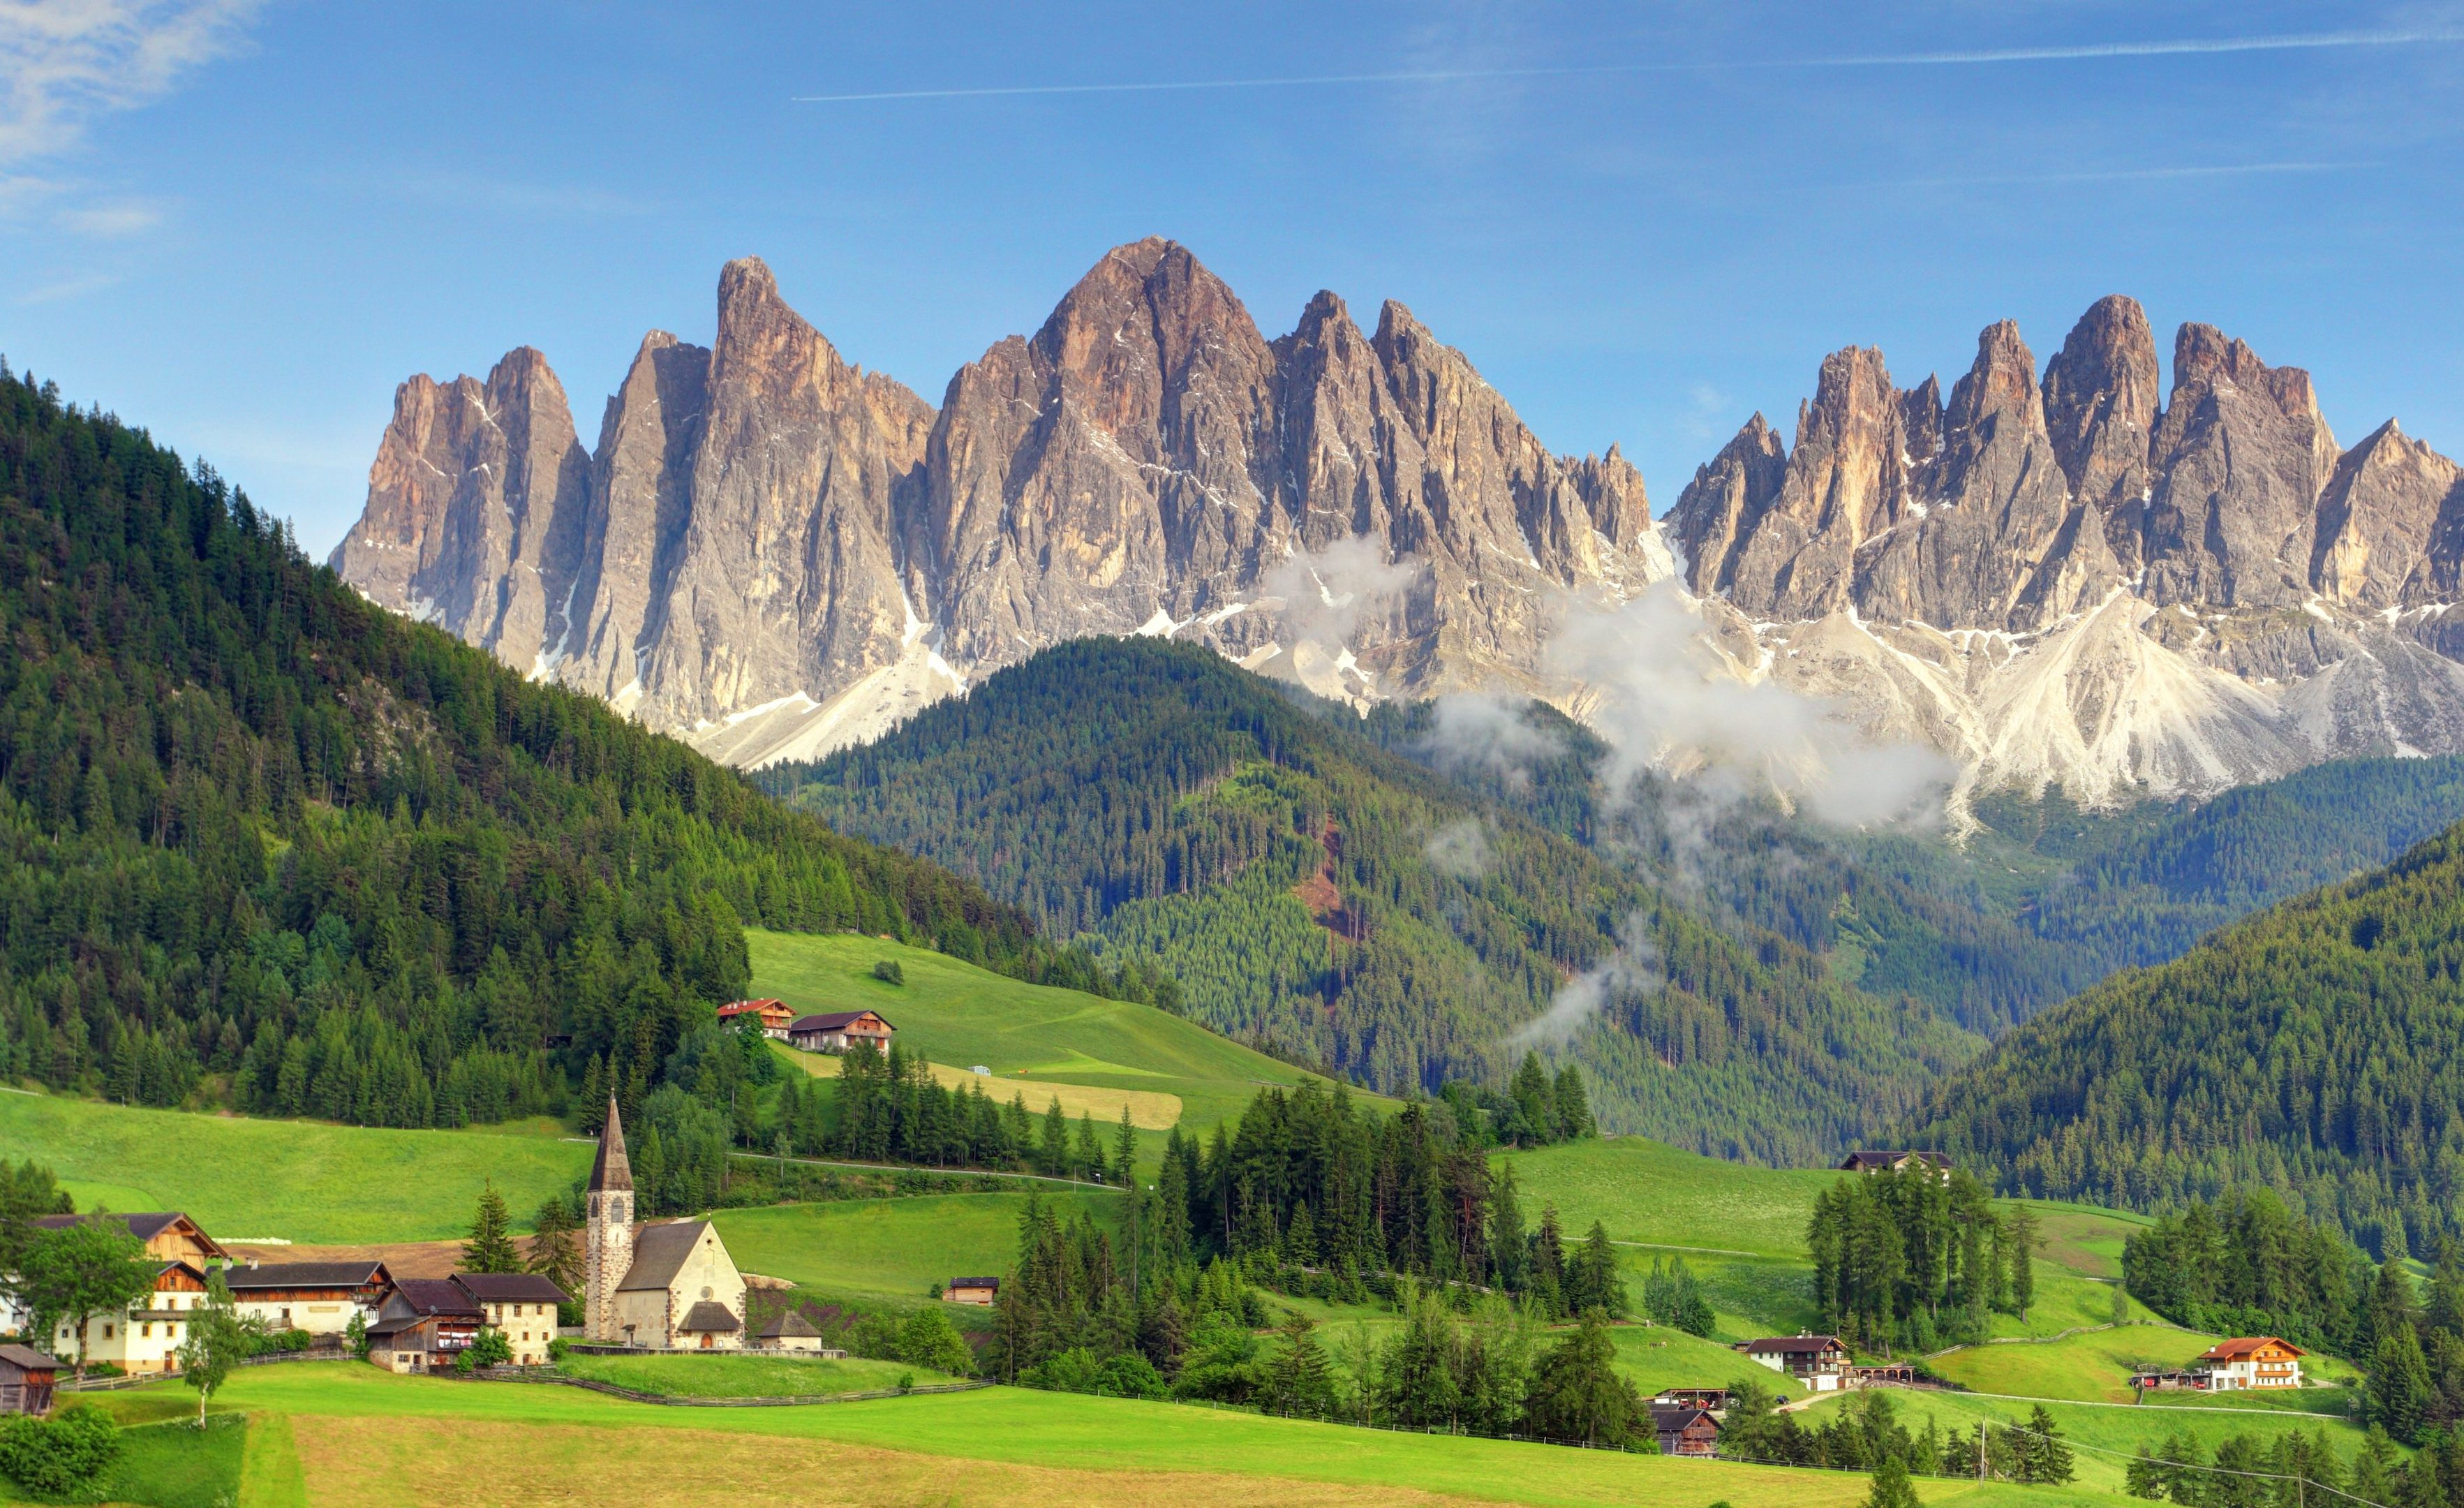 Val di Funes (Getty Images/iStockphoto)